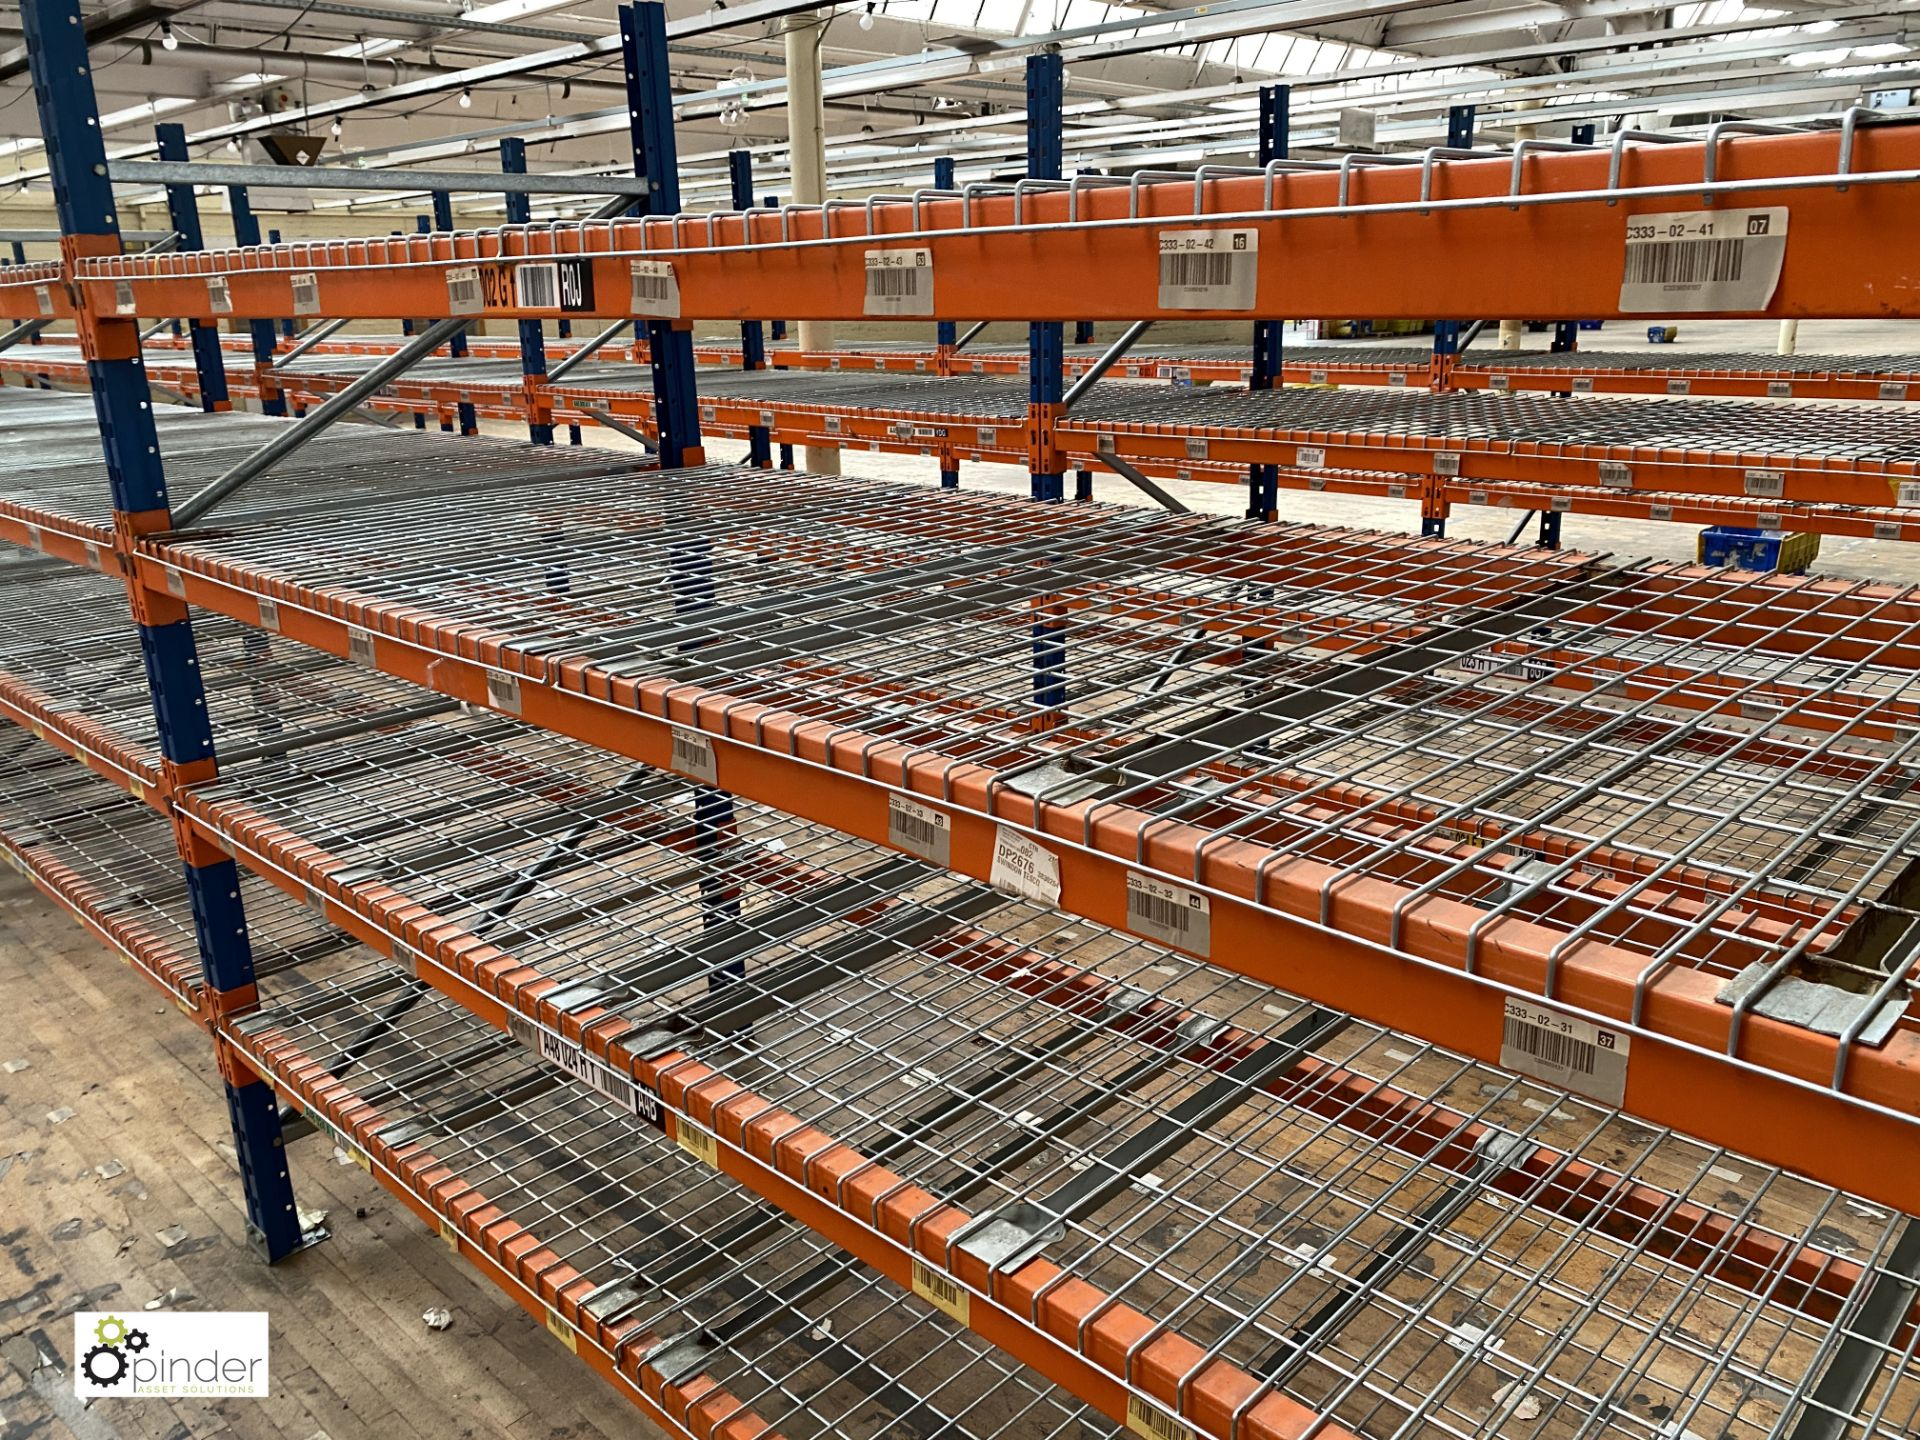 8 bays PSS 2K85 16 boltless Stock Racking, comprising 9 uprights 2400mm x 1200mm, 64 beams 2700mm, - Image 3 of 4